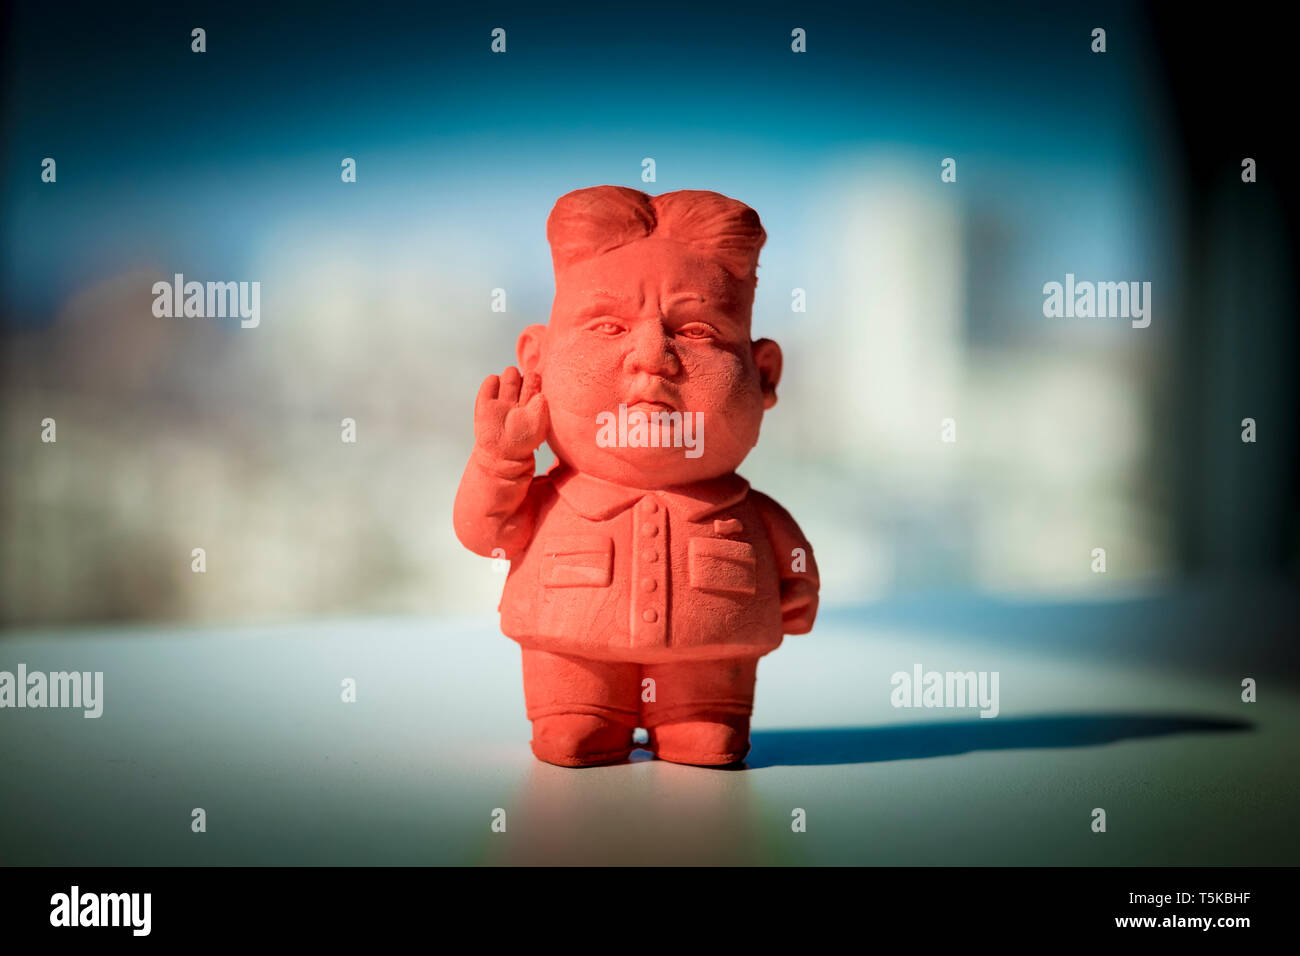 A red eraser of Kim Jong-un figure - Stock Image